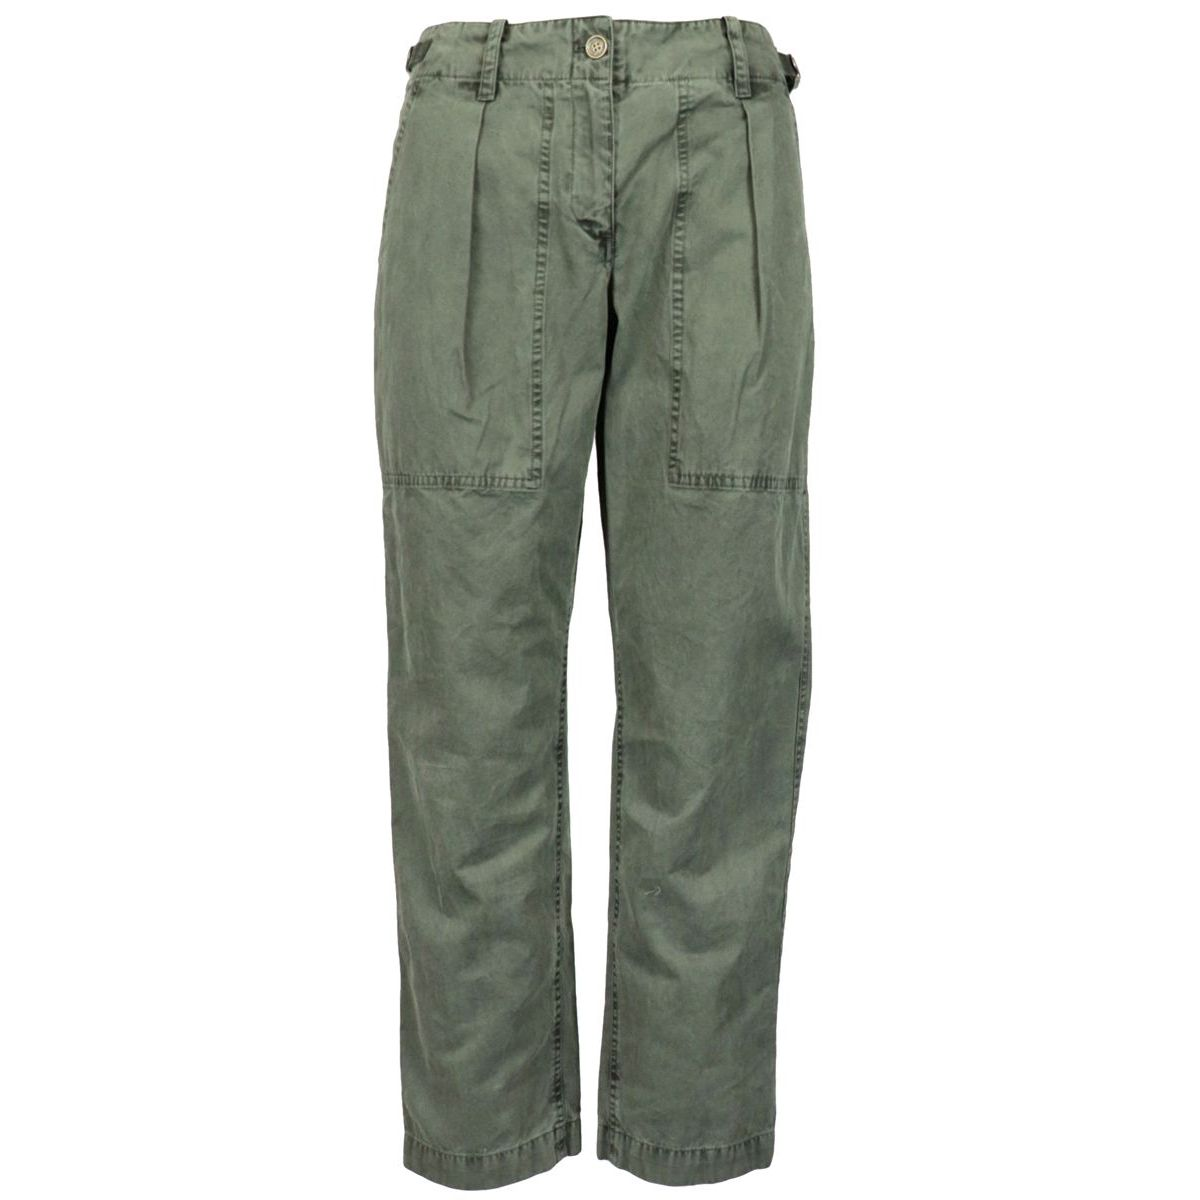 Cotton trousers with pockets Military Michael Kors